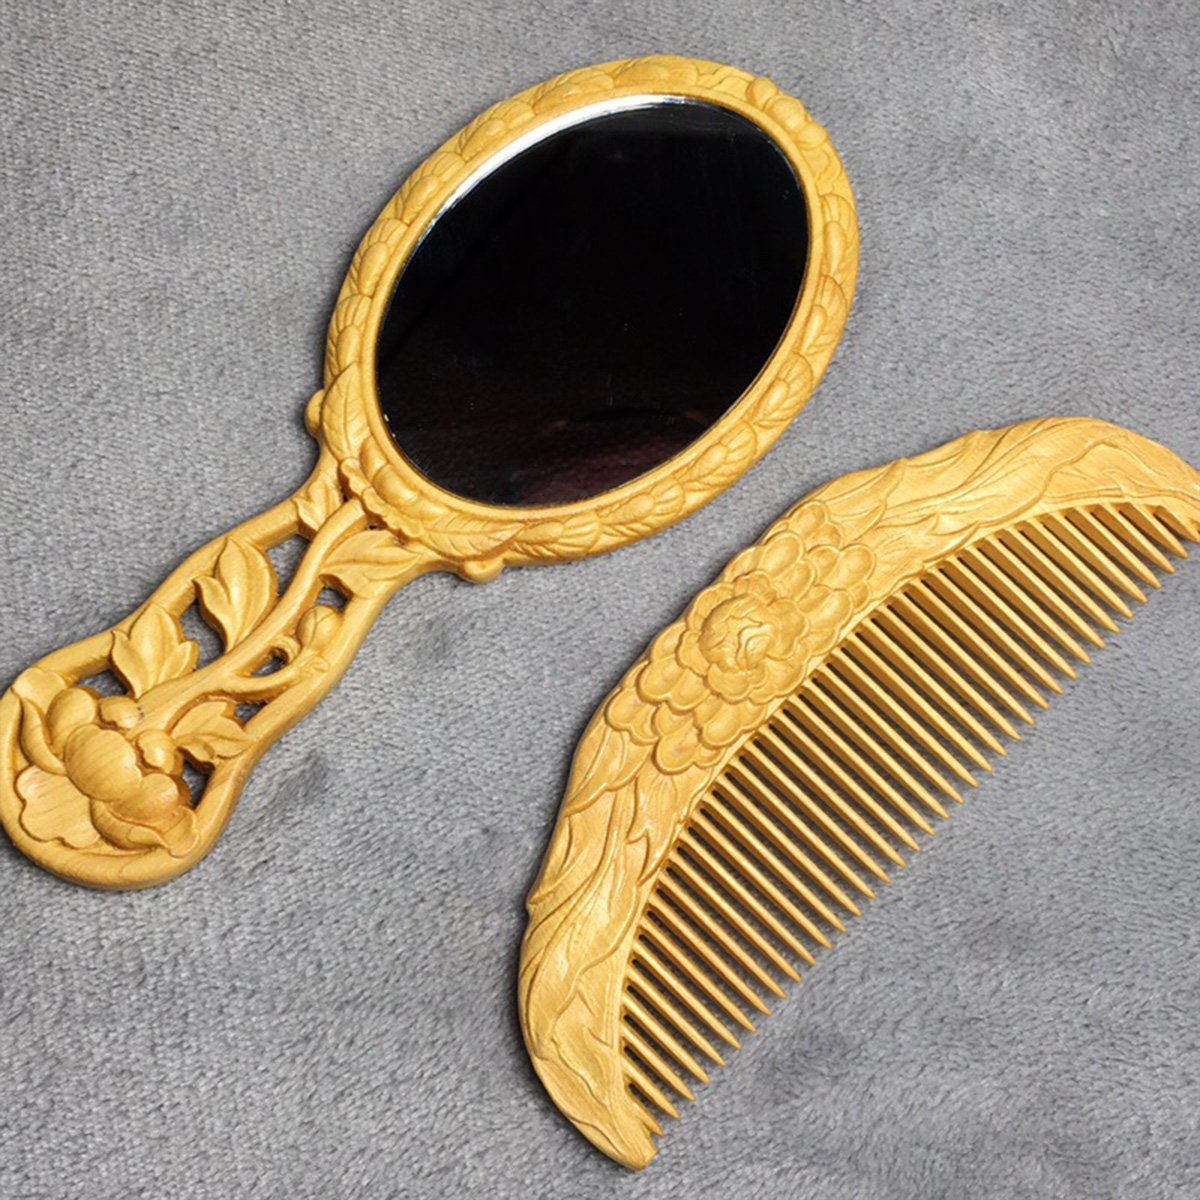 Warm Van Vintage Classical Gift Box Wood Mirror and Comb Set, Give Girlfriend Mom Relatives a Special Birthday Treasures